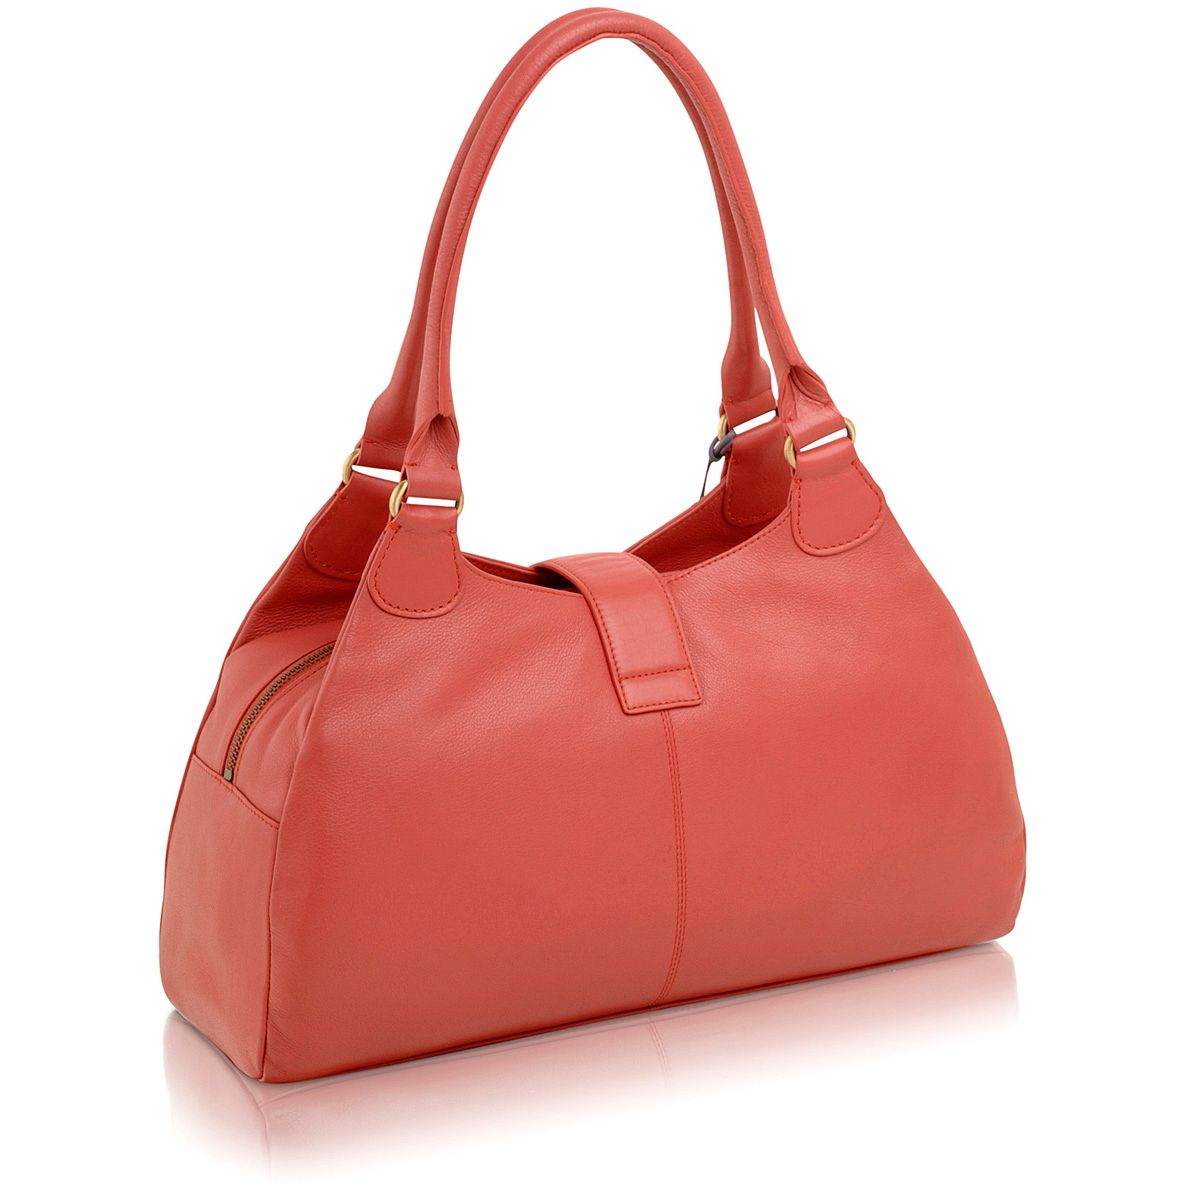 Pink large leather zip top tote bag